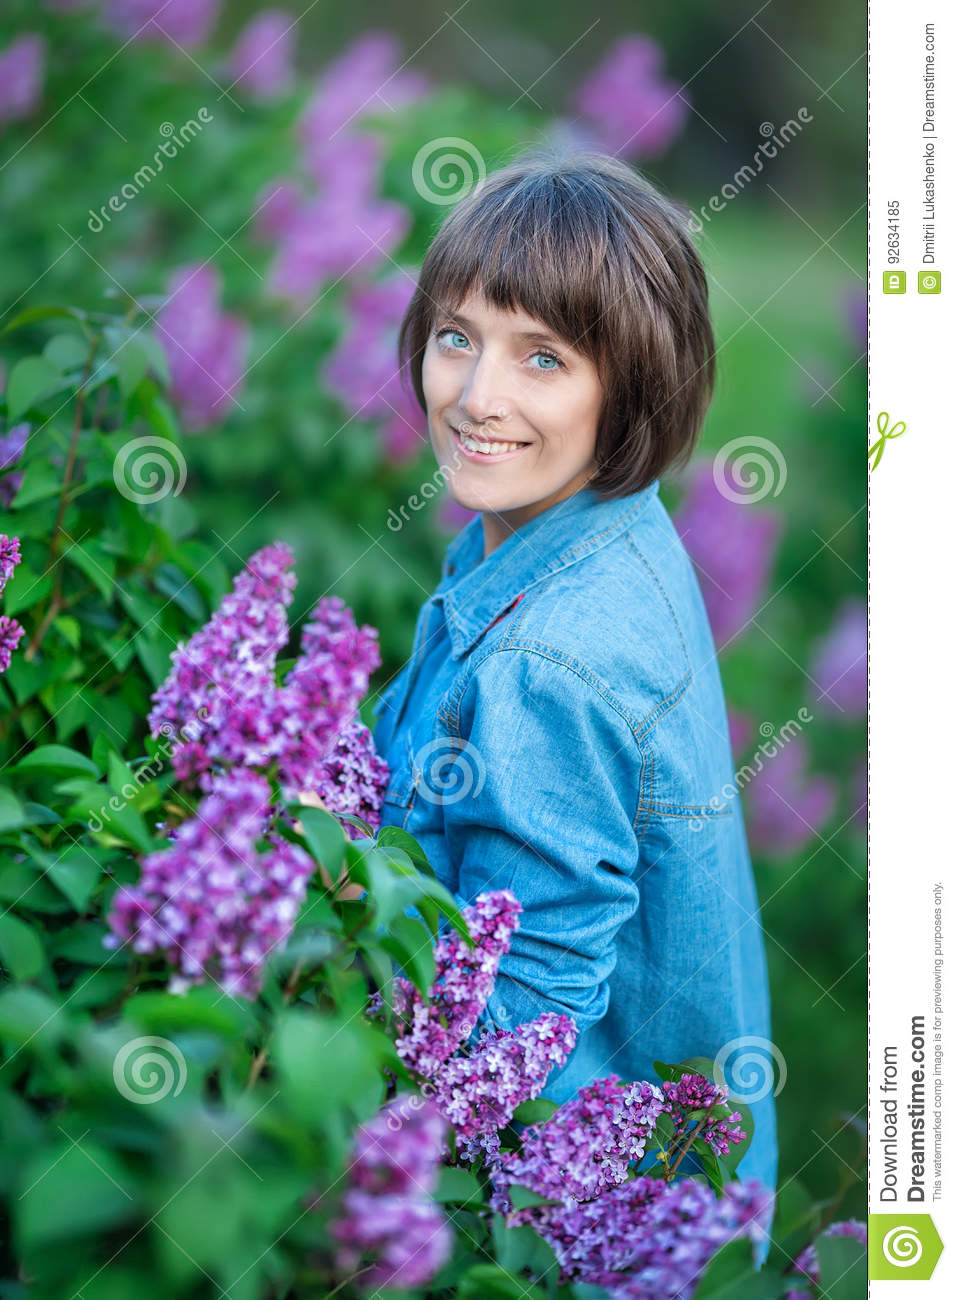 Cute adorable beautifull lady woman girl with brunette hair on a meadow of lilac purple bush.People in jeans wear.